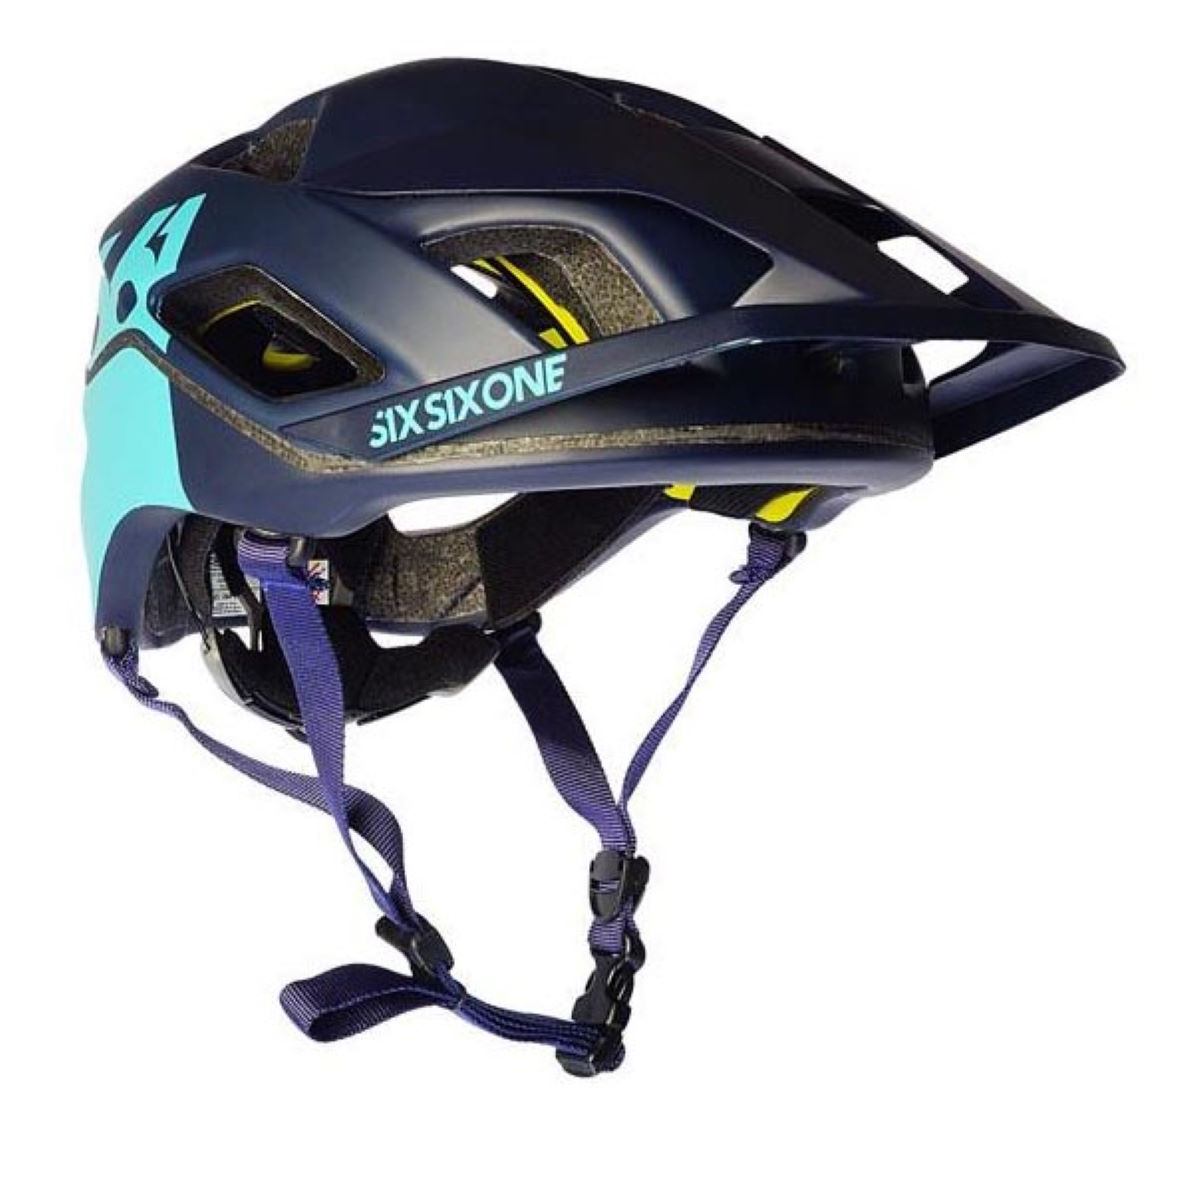 Casque SixSixOne Evo AM Patrol MIPS - XL/2XL Navy/Navy Casques